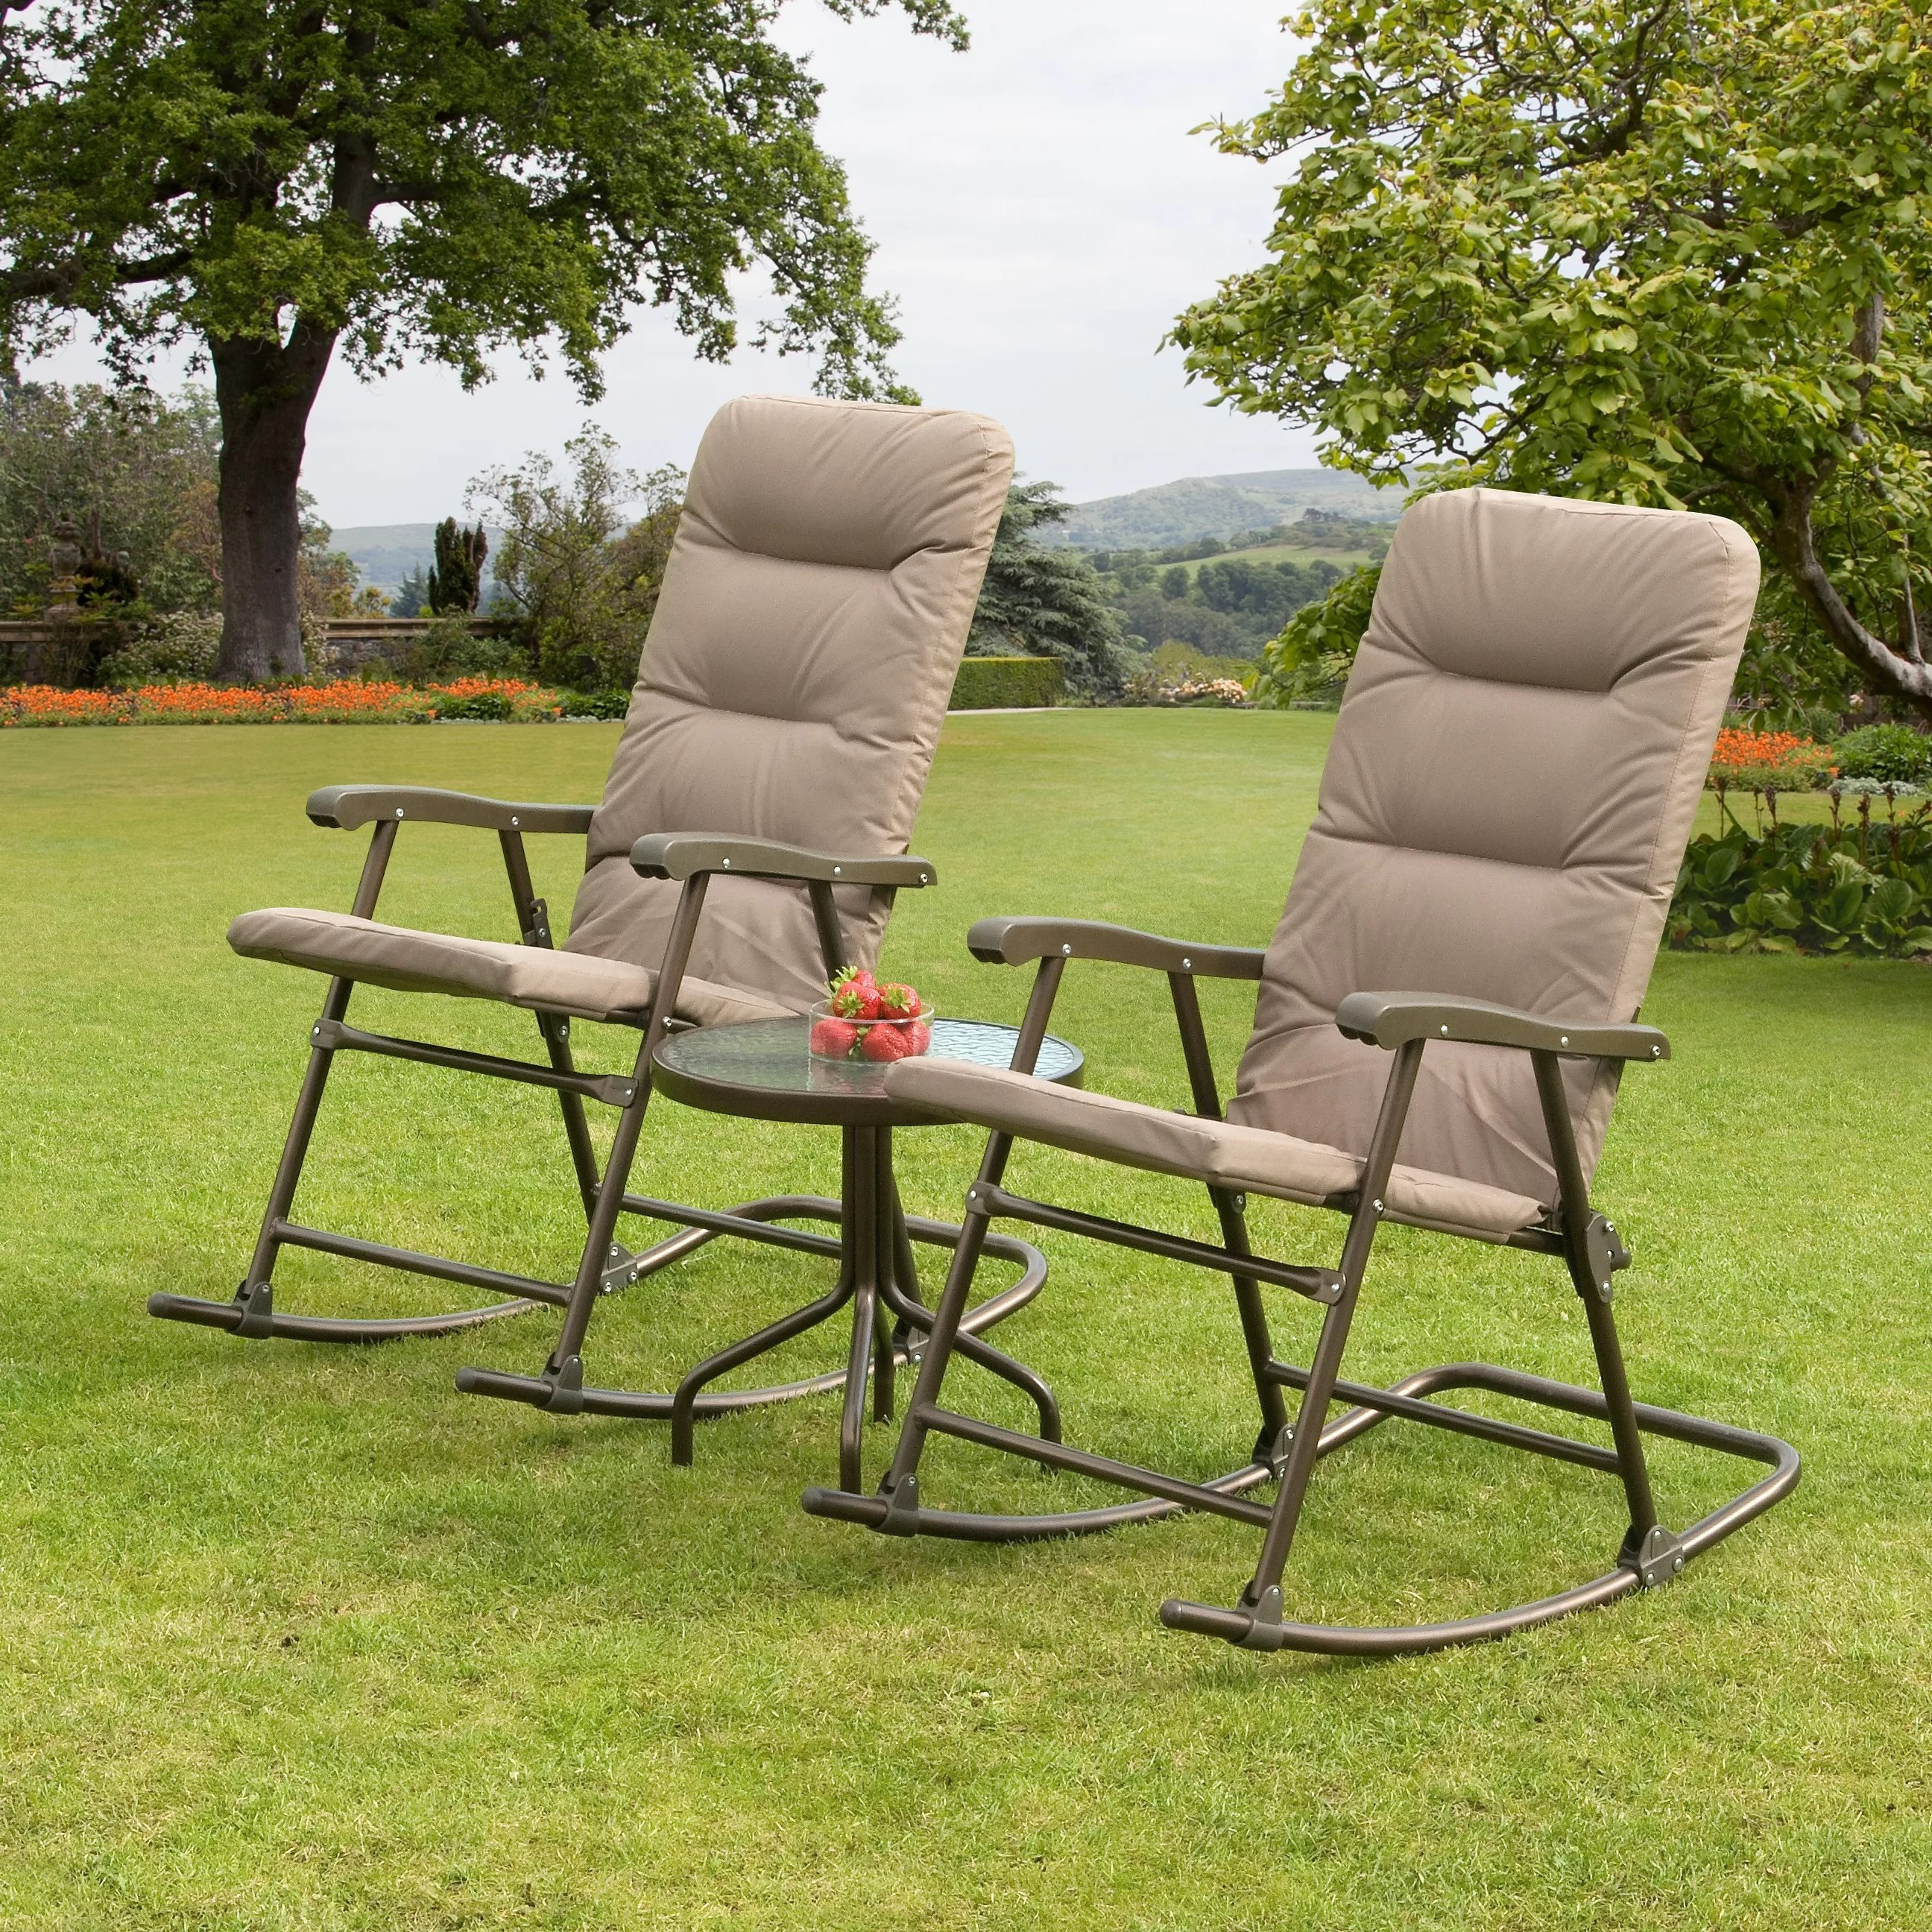 SunTime Outdoor Living Hereford 3 Piece Rocker Seating ... on Suntime Outdoor Living  id=79564